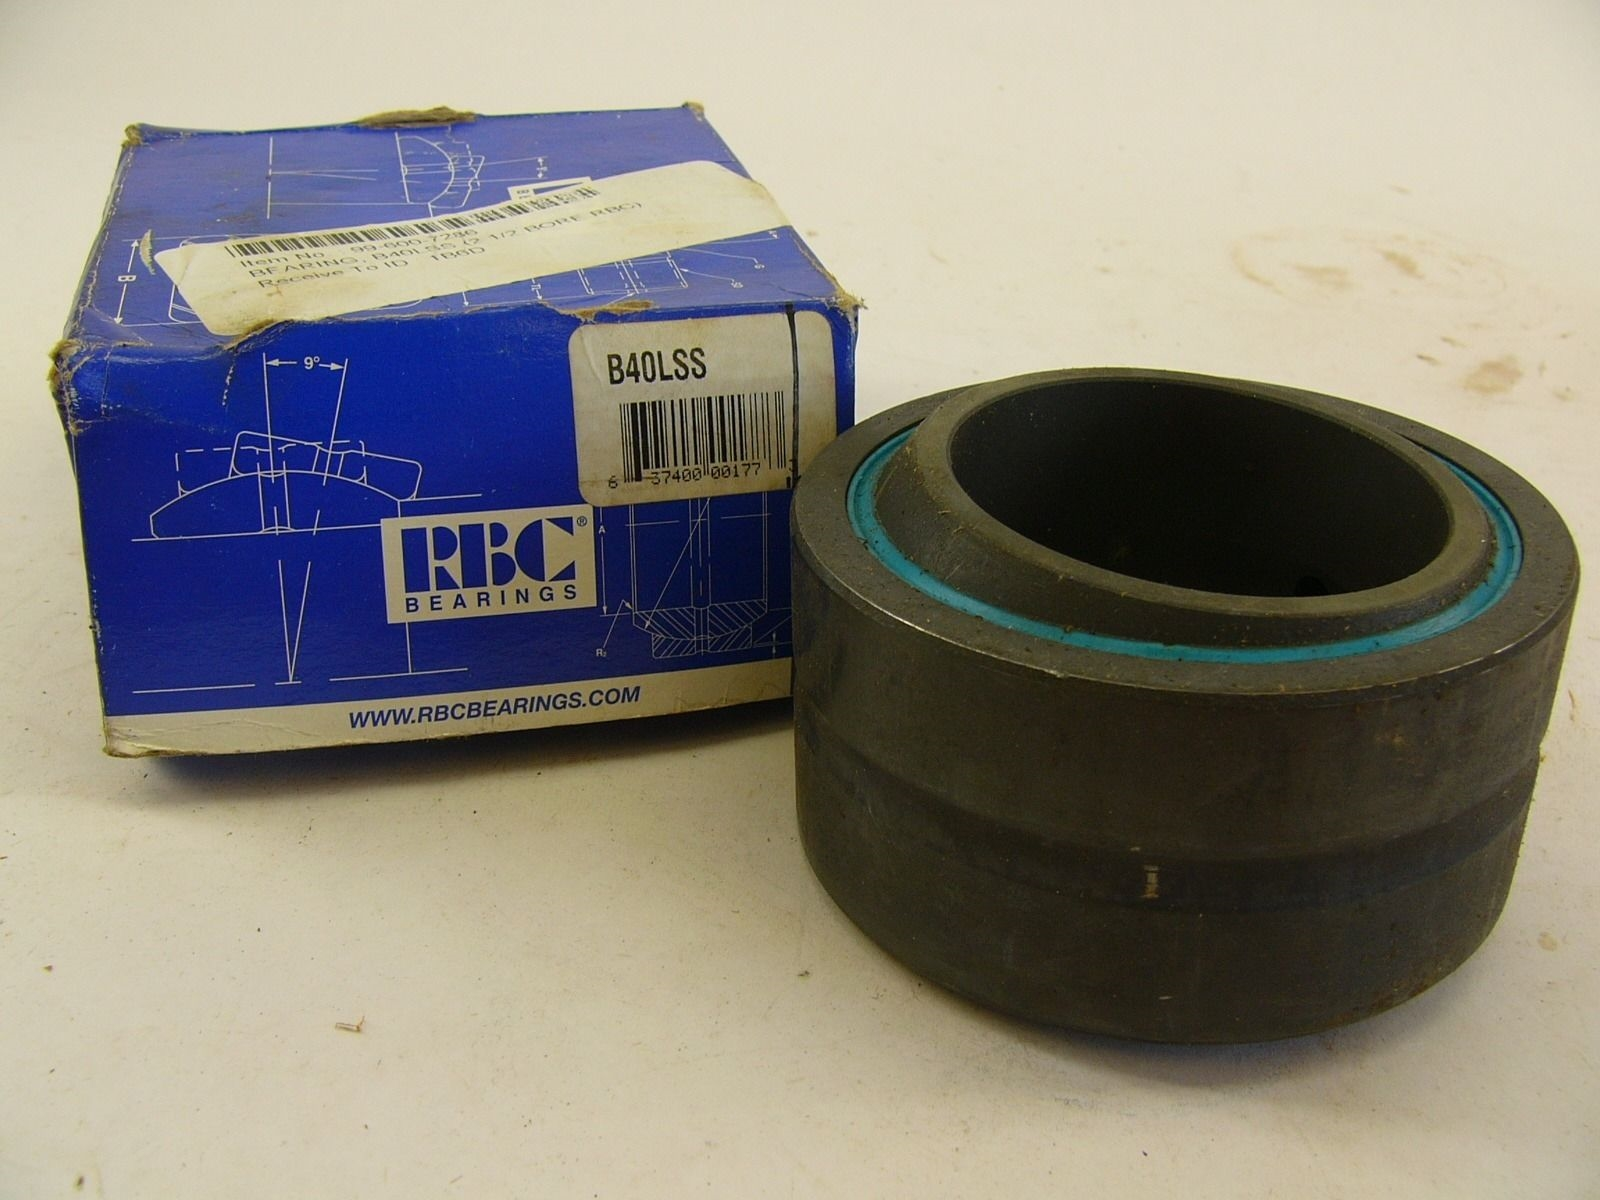 RBC B40LSS B4OLSS BEARING NEW IN BOX!!! (J9) 1